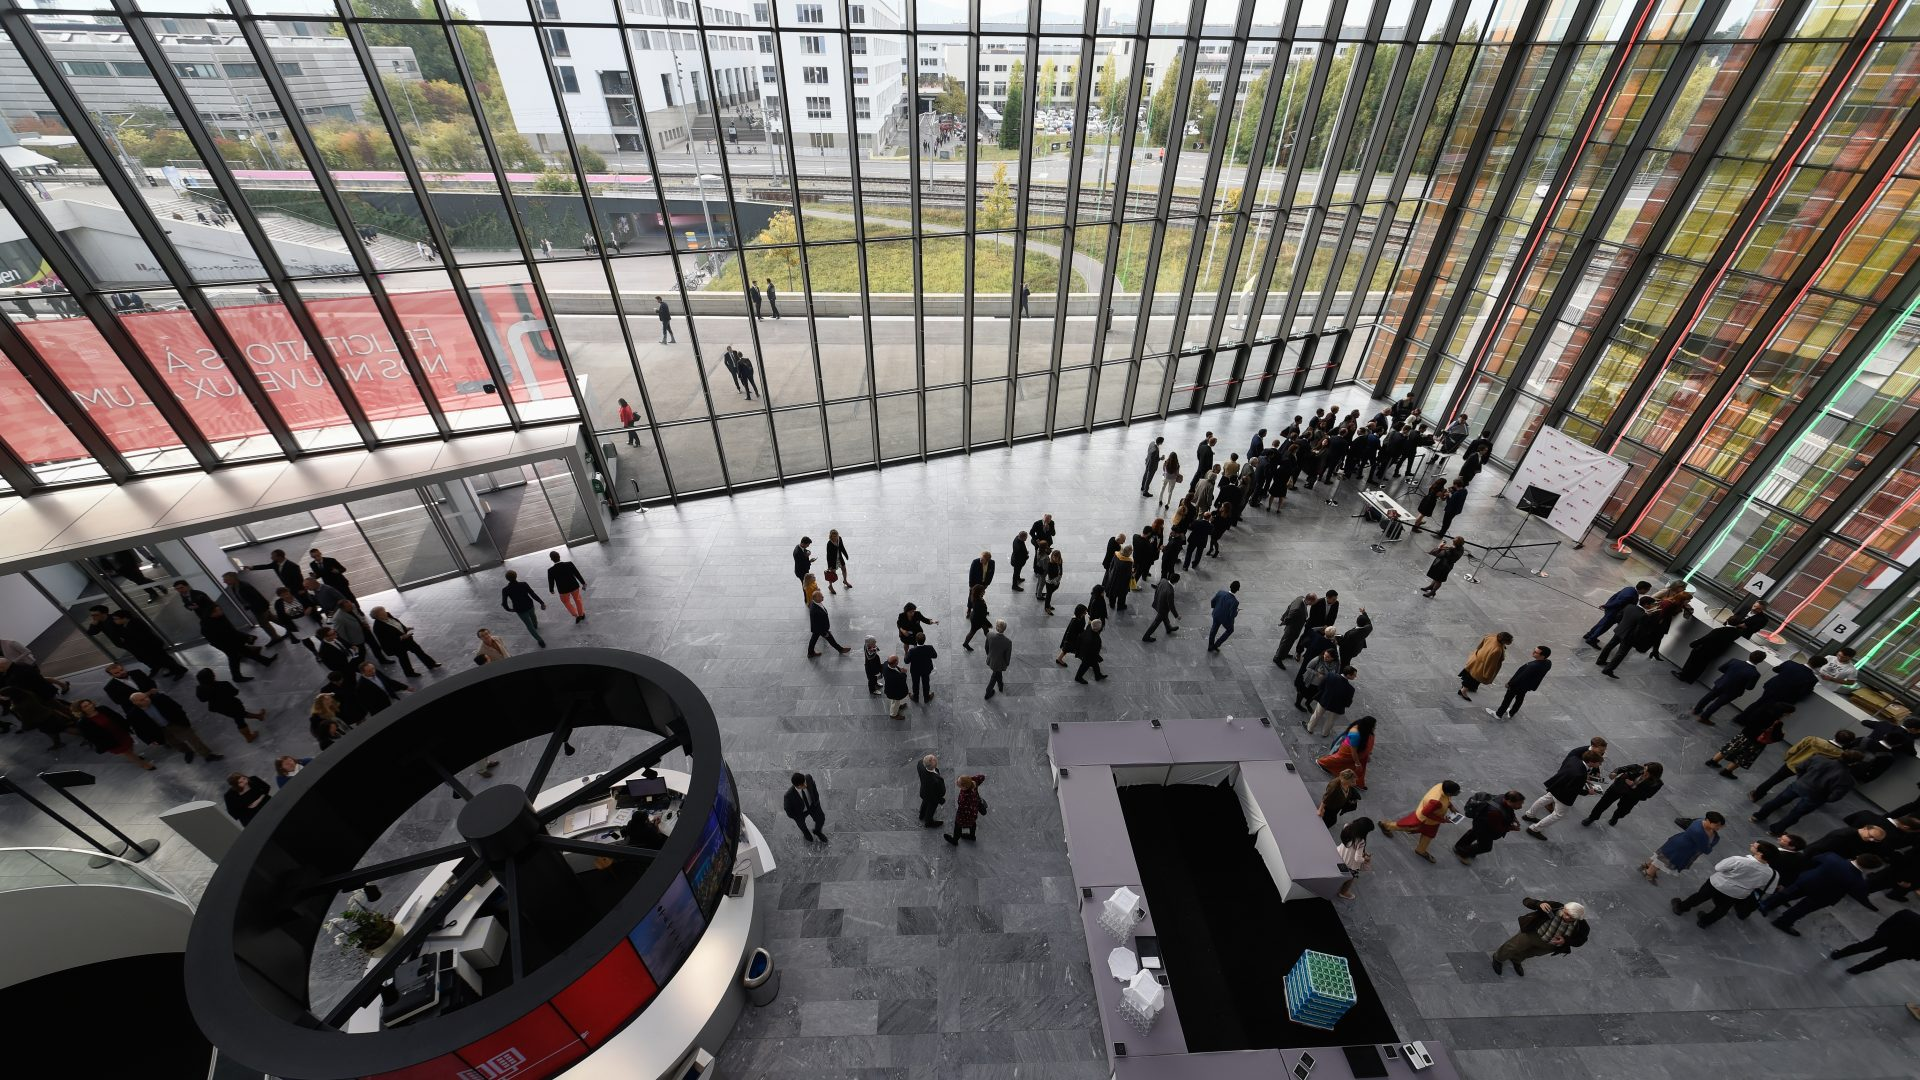 Intérieur du SwissTech Convention Center durant la Magistrale 2018